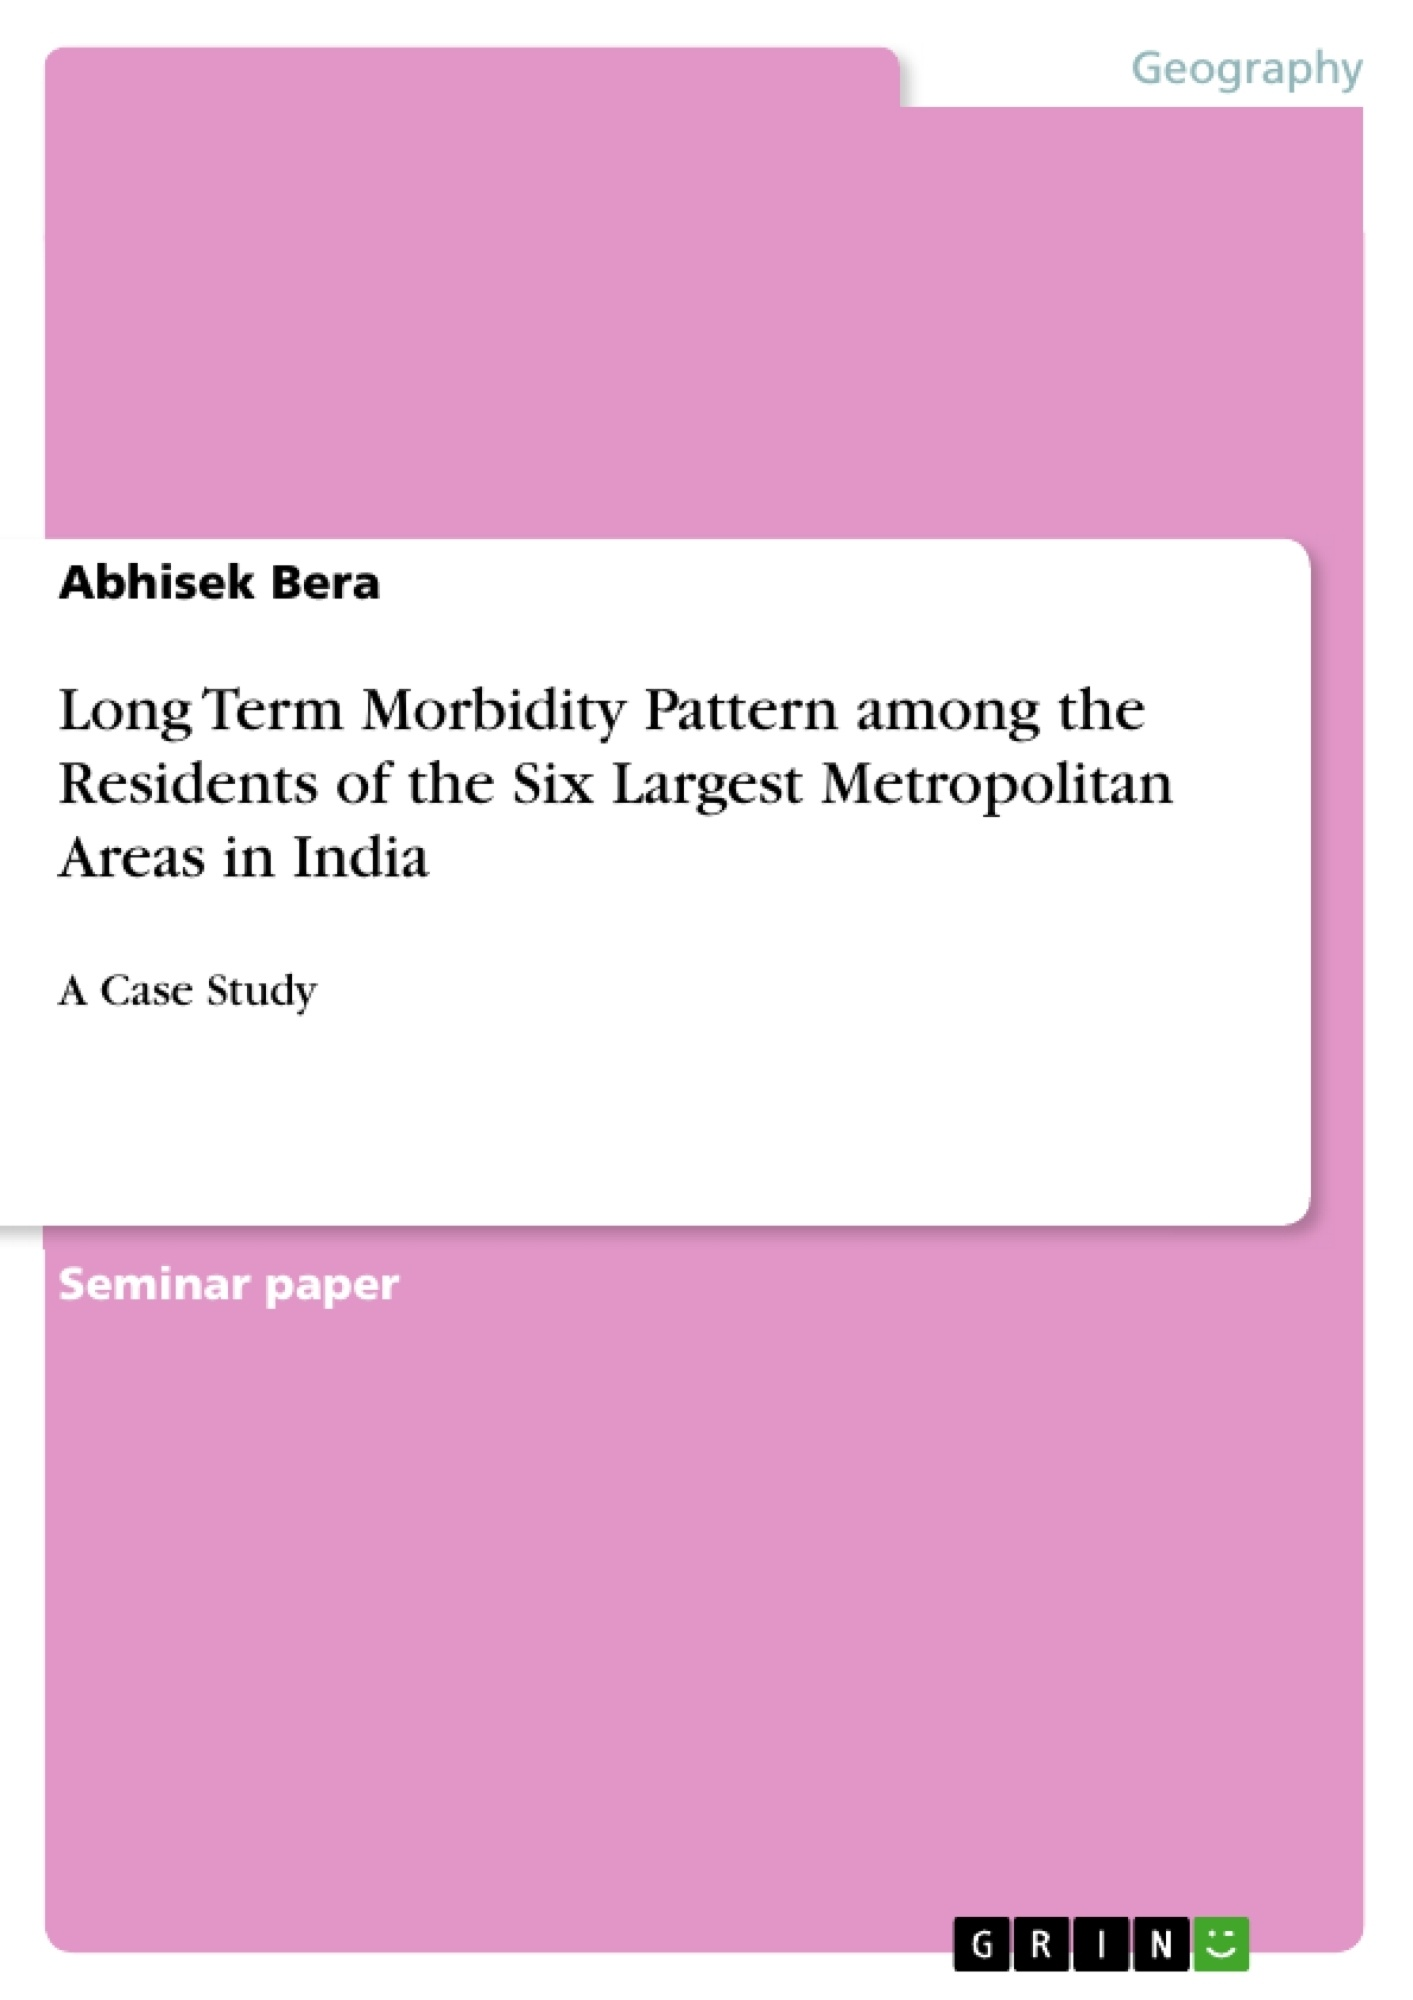 Title: Long Term Morbidity Pattern among the Residents of the Six Largest Metropolitan Areas in India